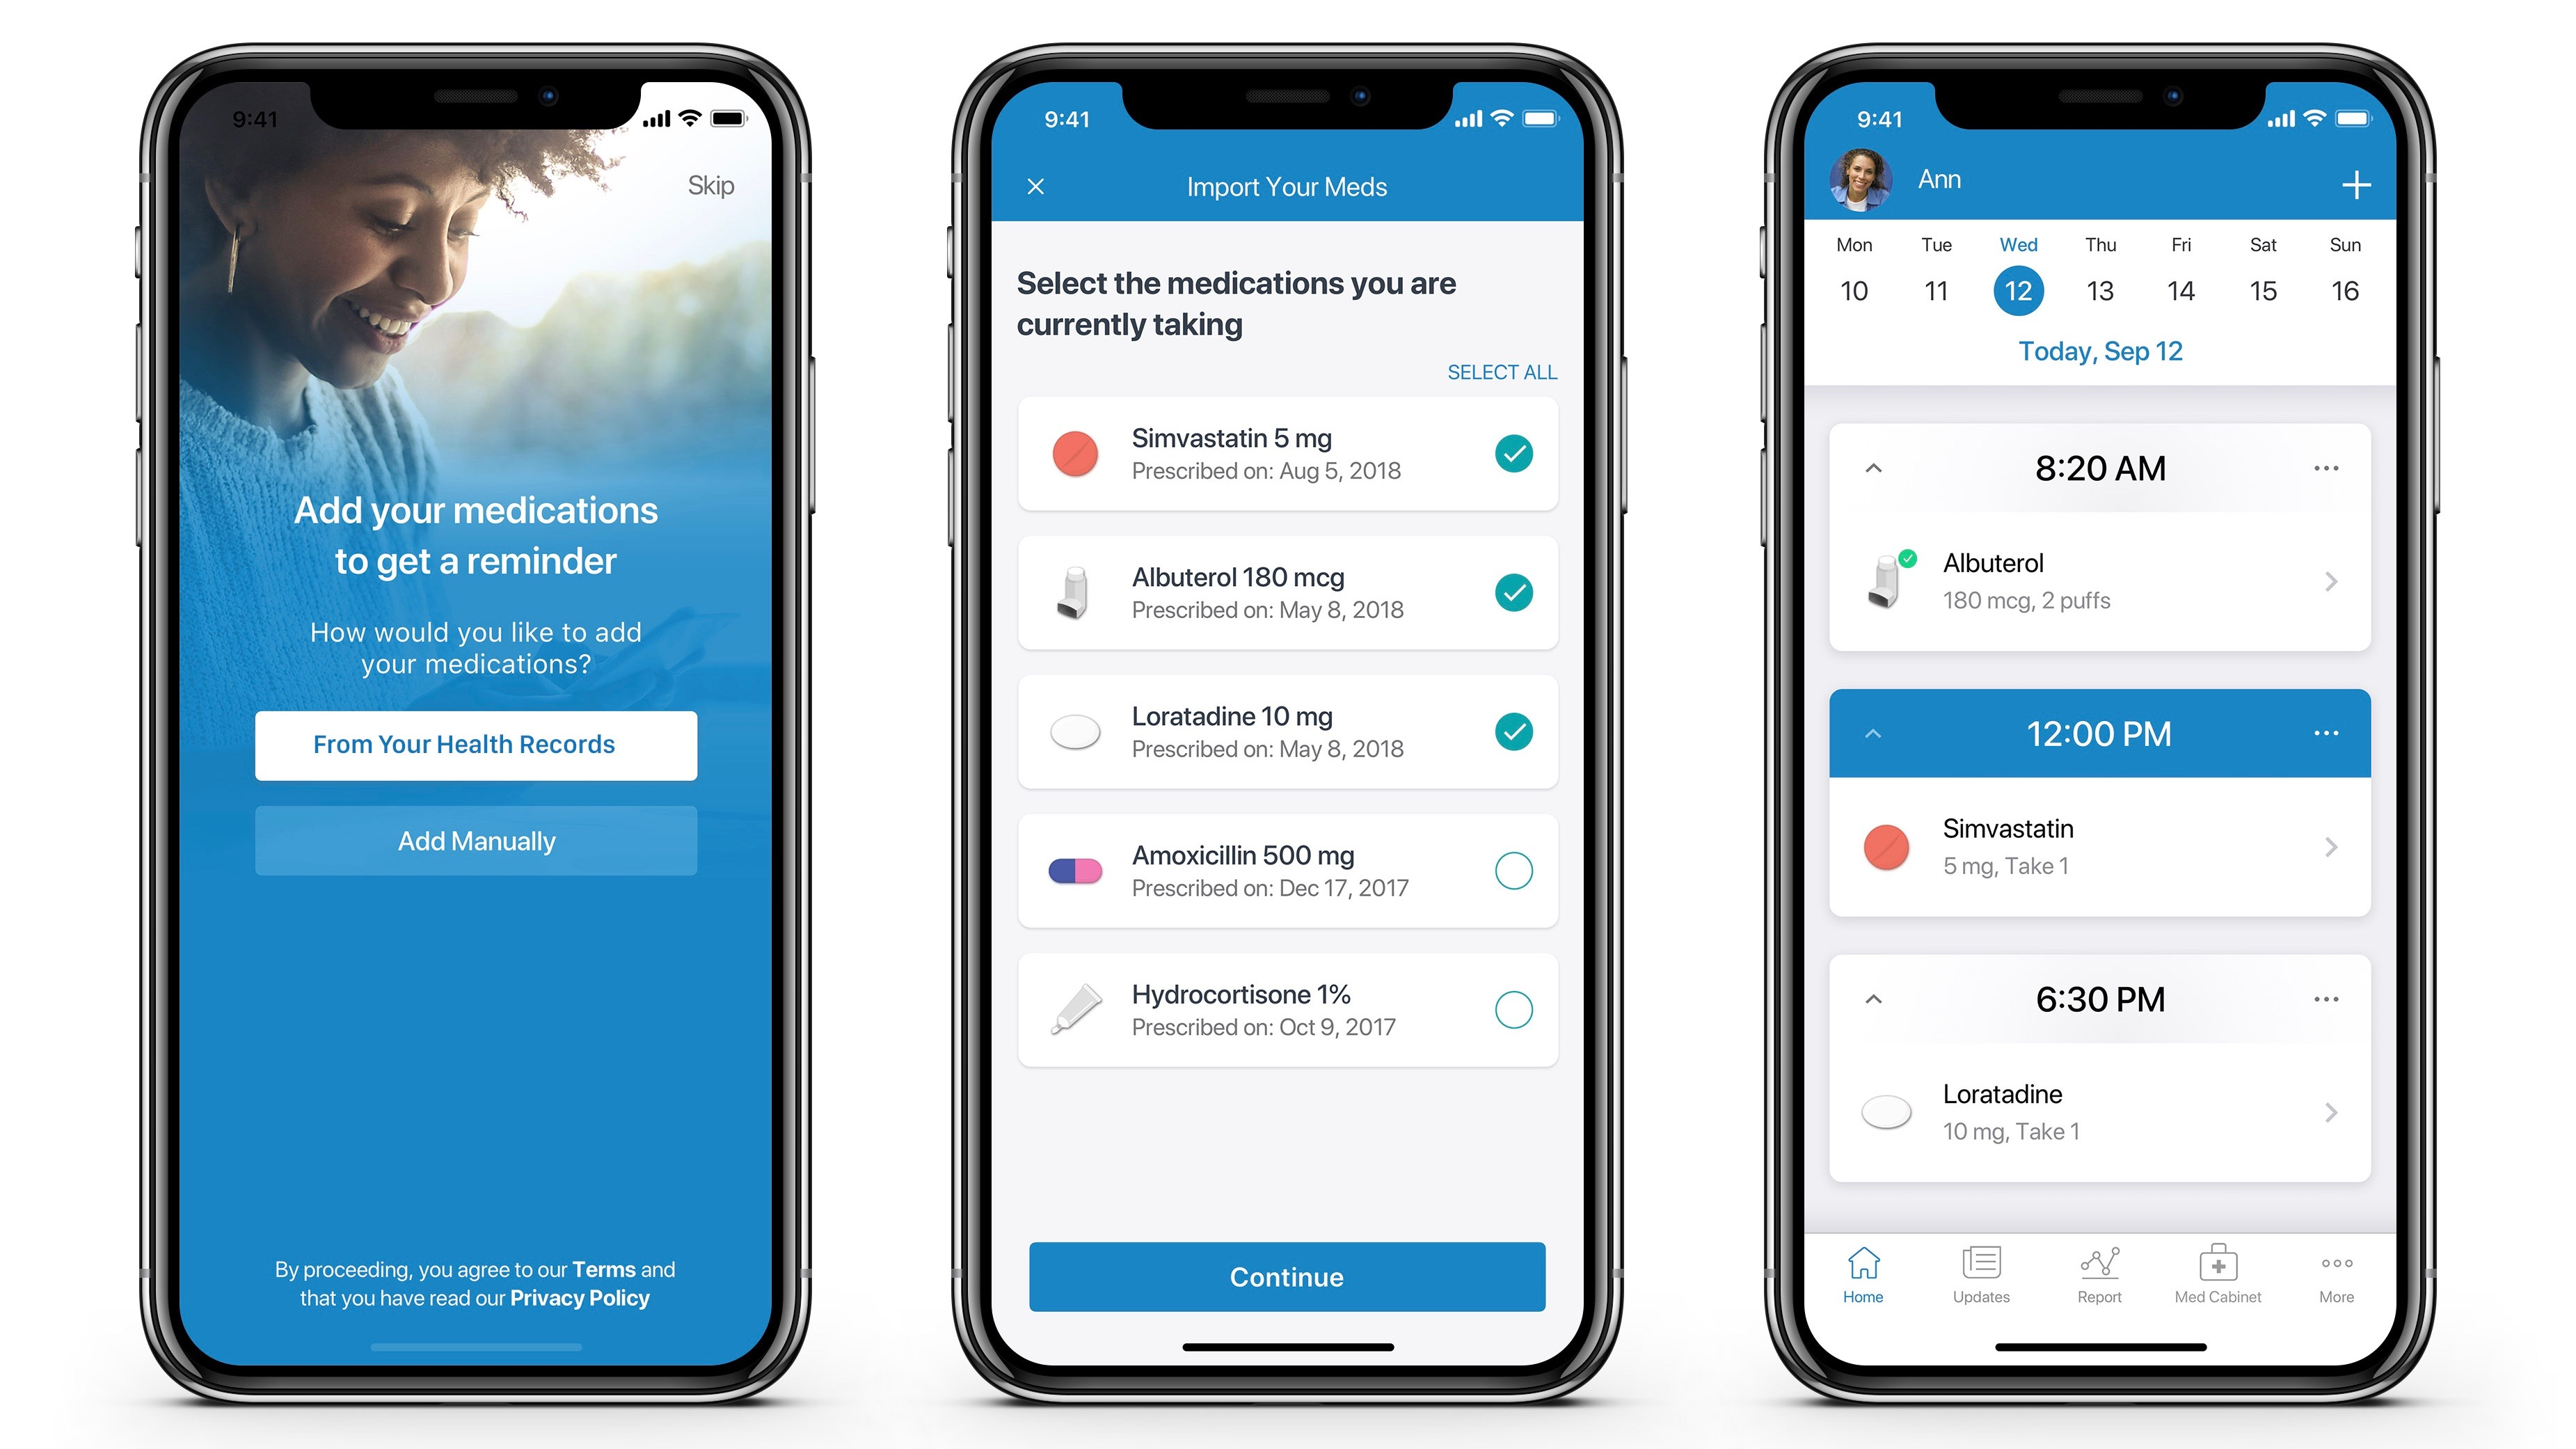 Medisafe becomes the latest health platform to add support for Apple's Health Records API